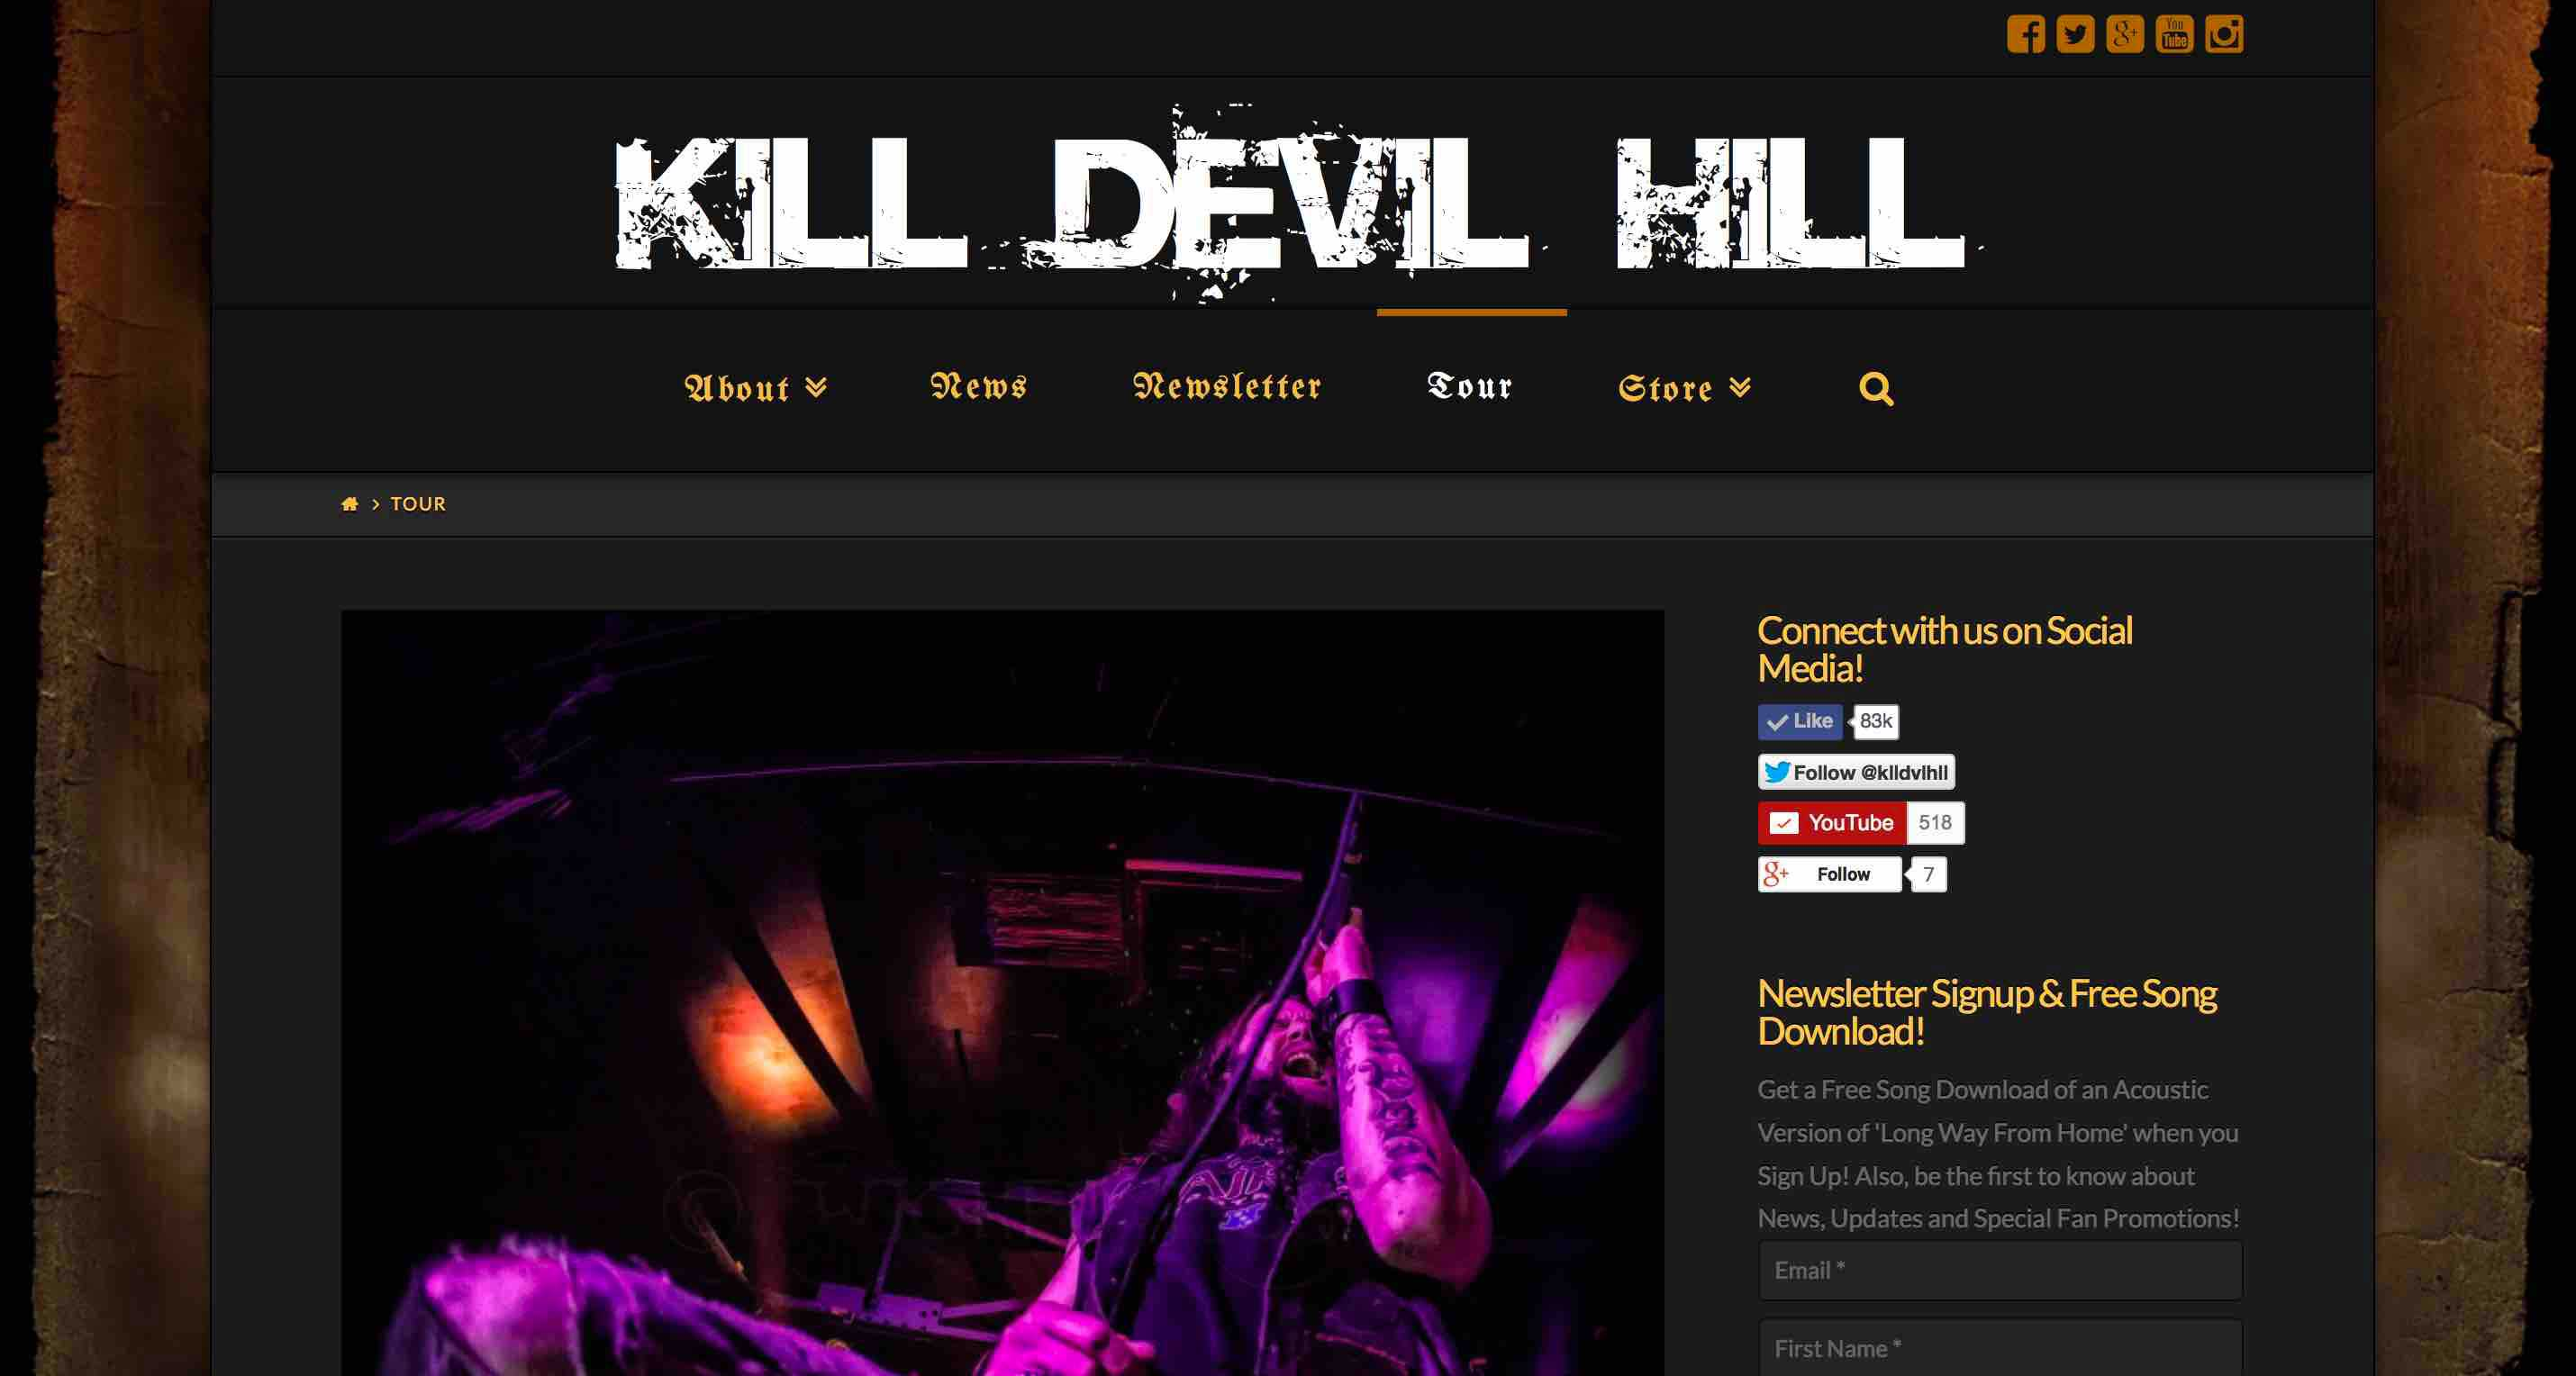 Kill Devil Hill Music